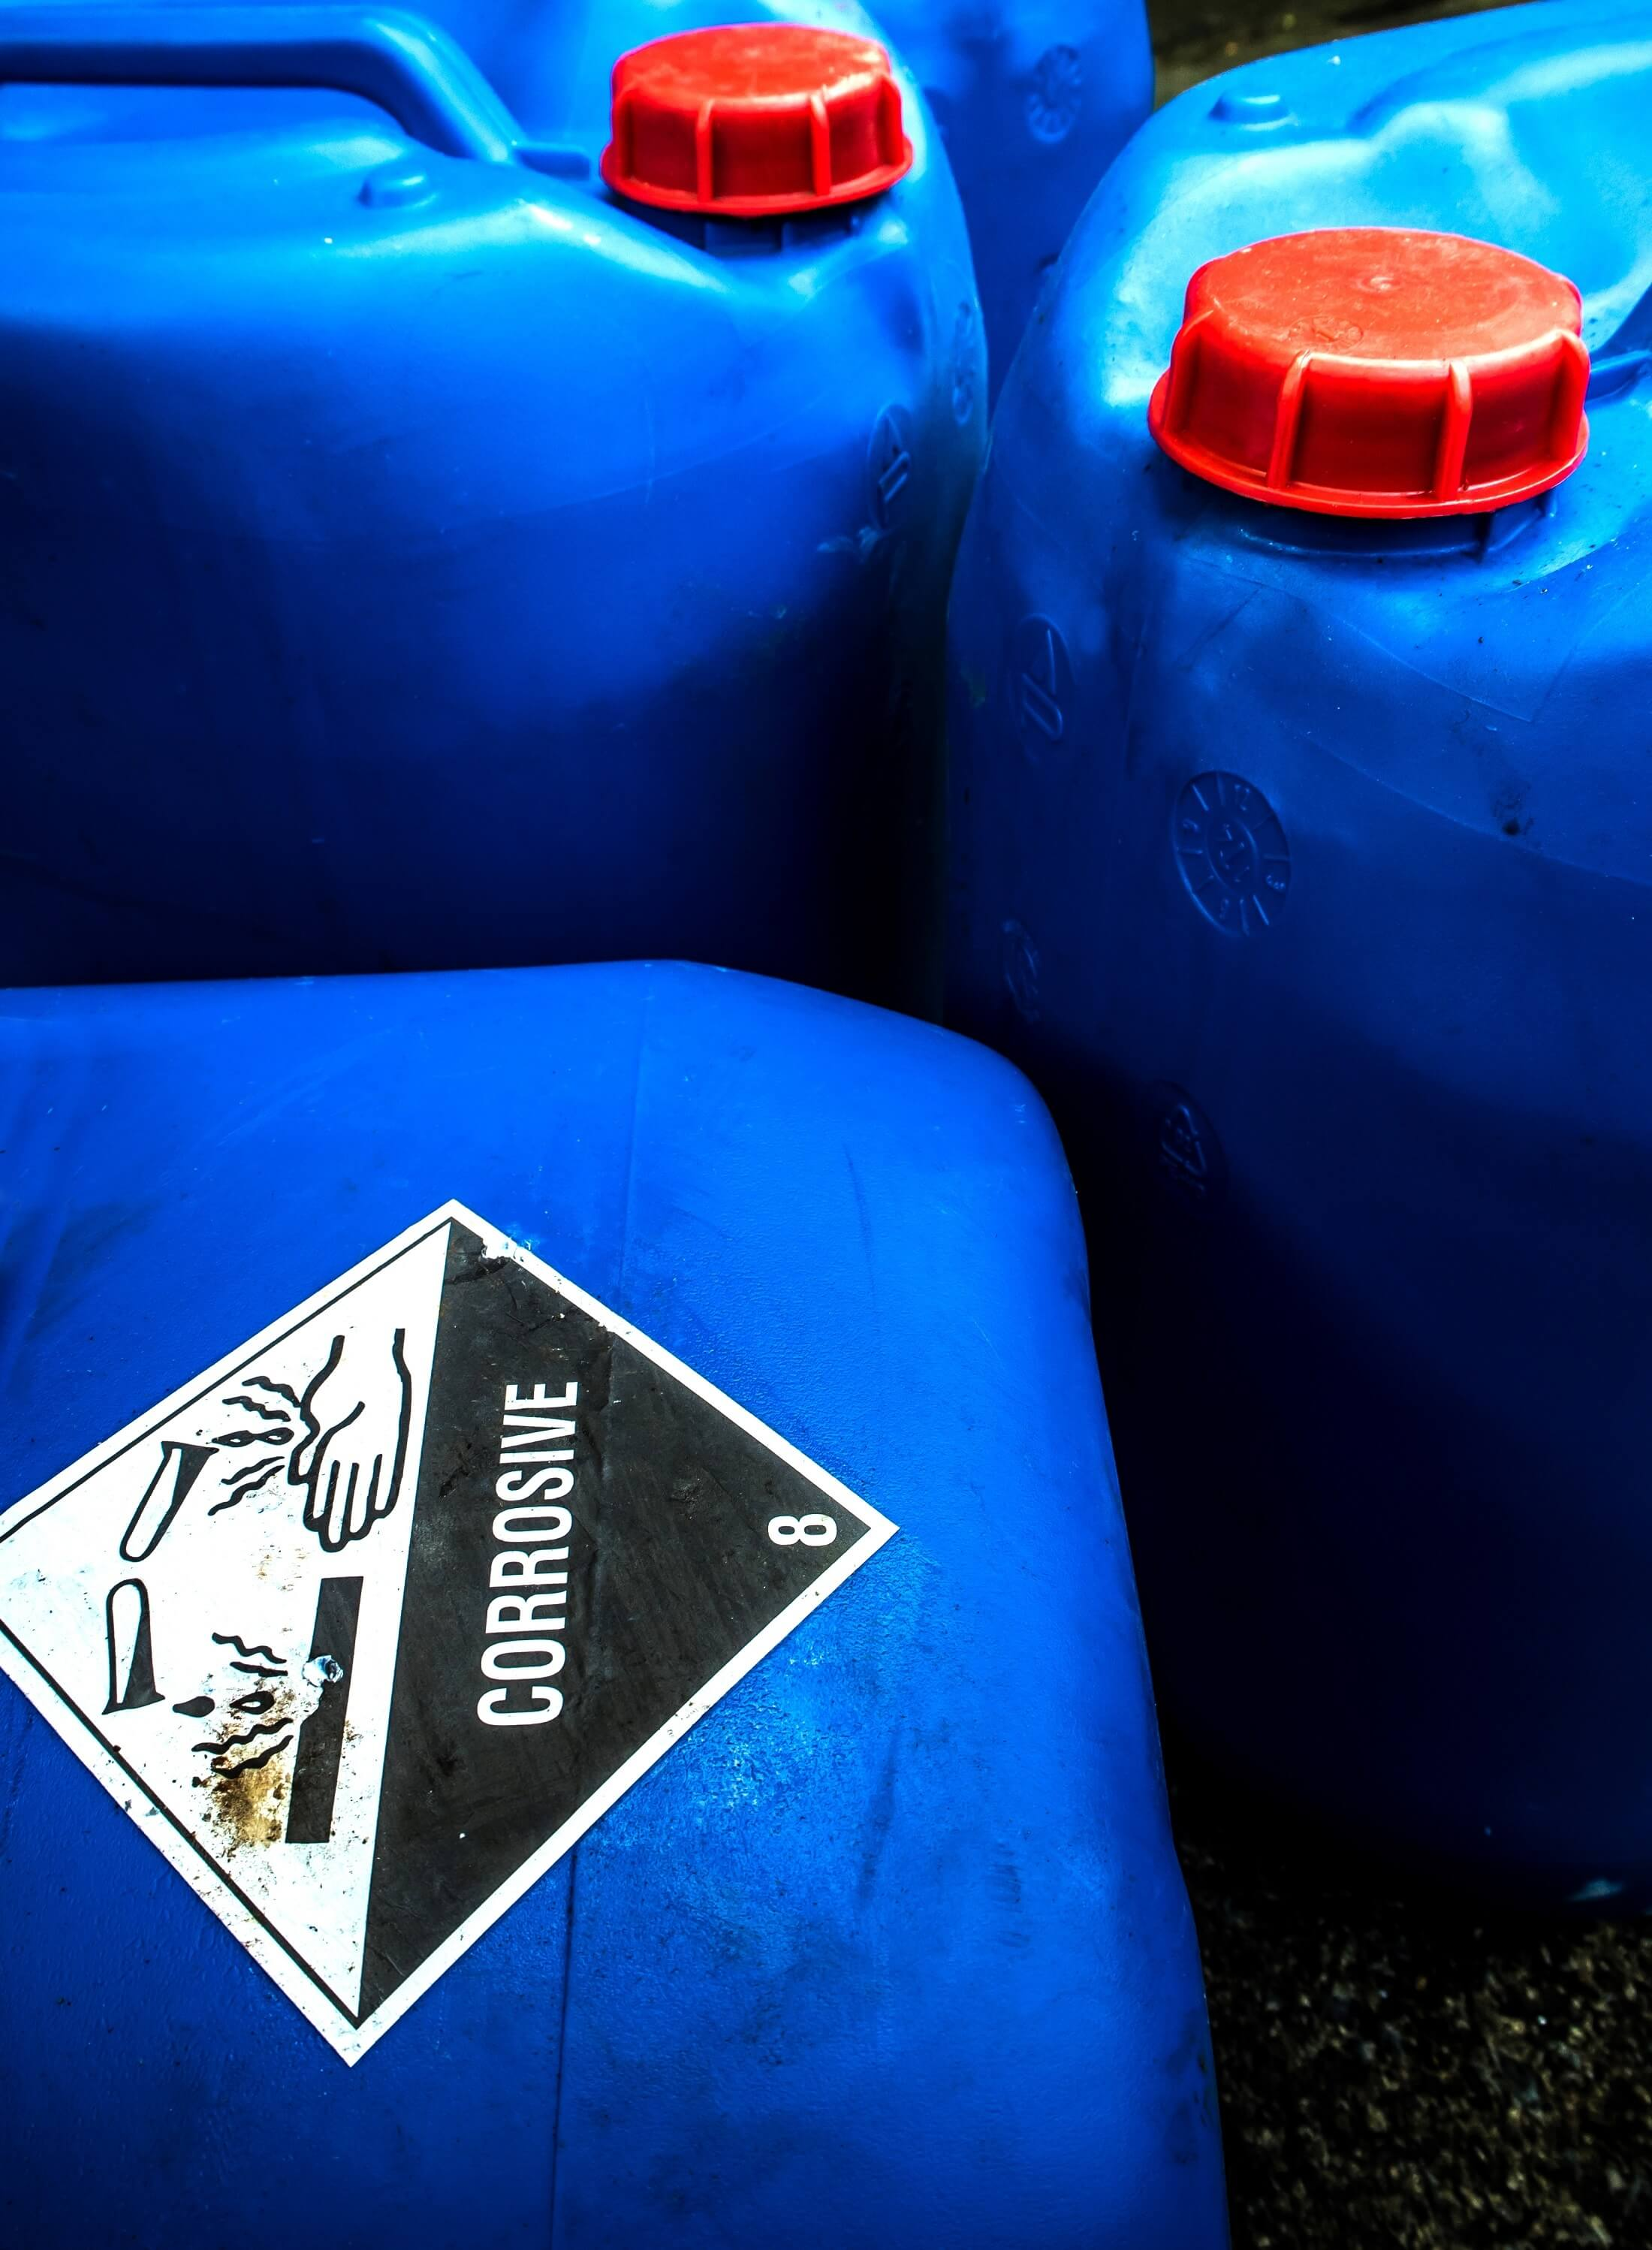 Handling corrosive substances in the workplace